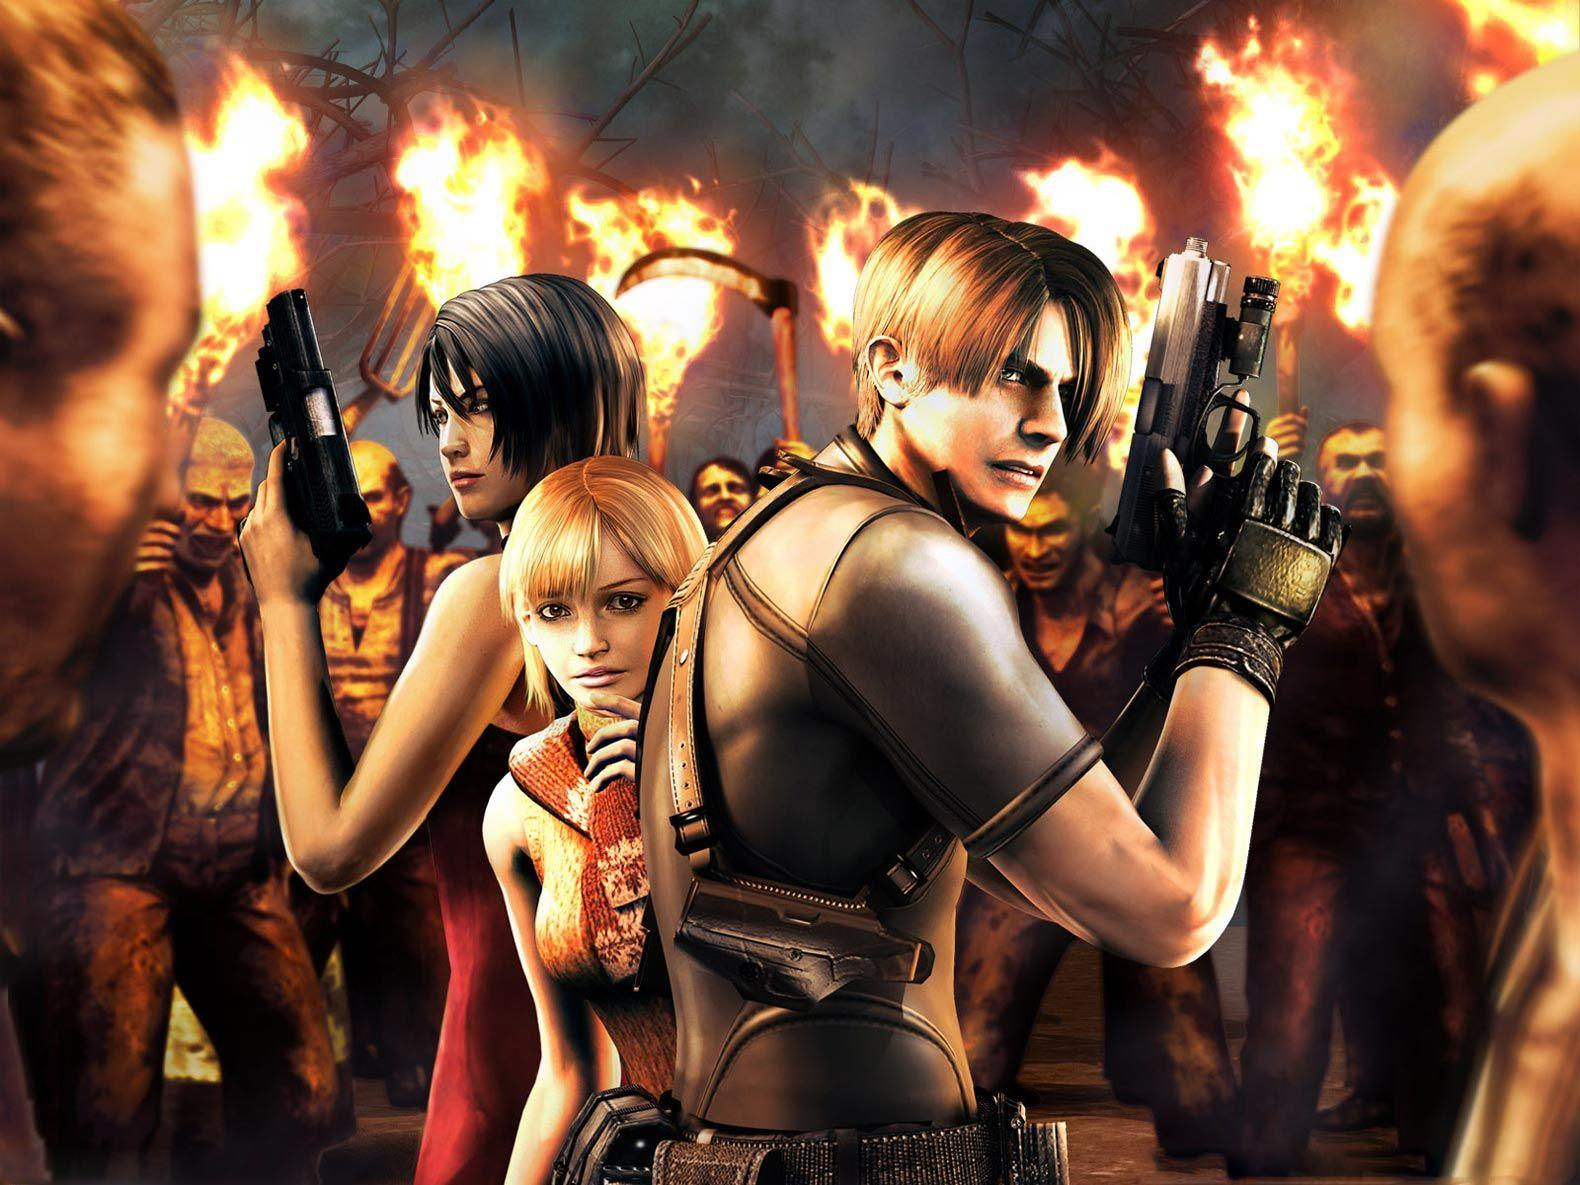 Resident Evil Wallpapers wallpaper.